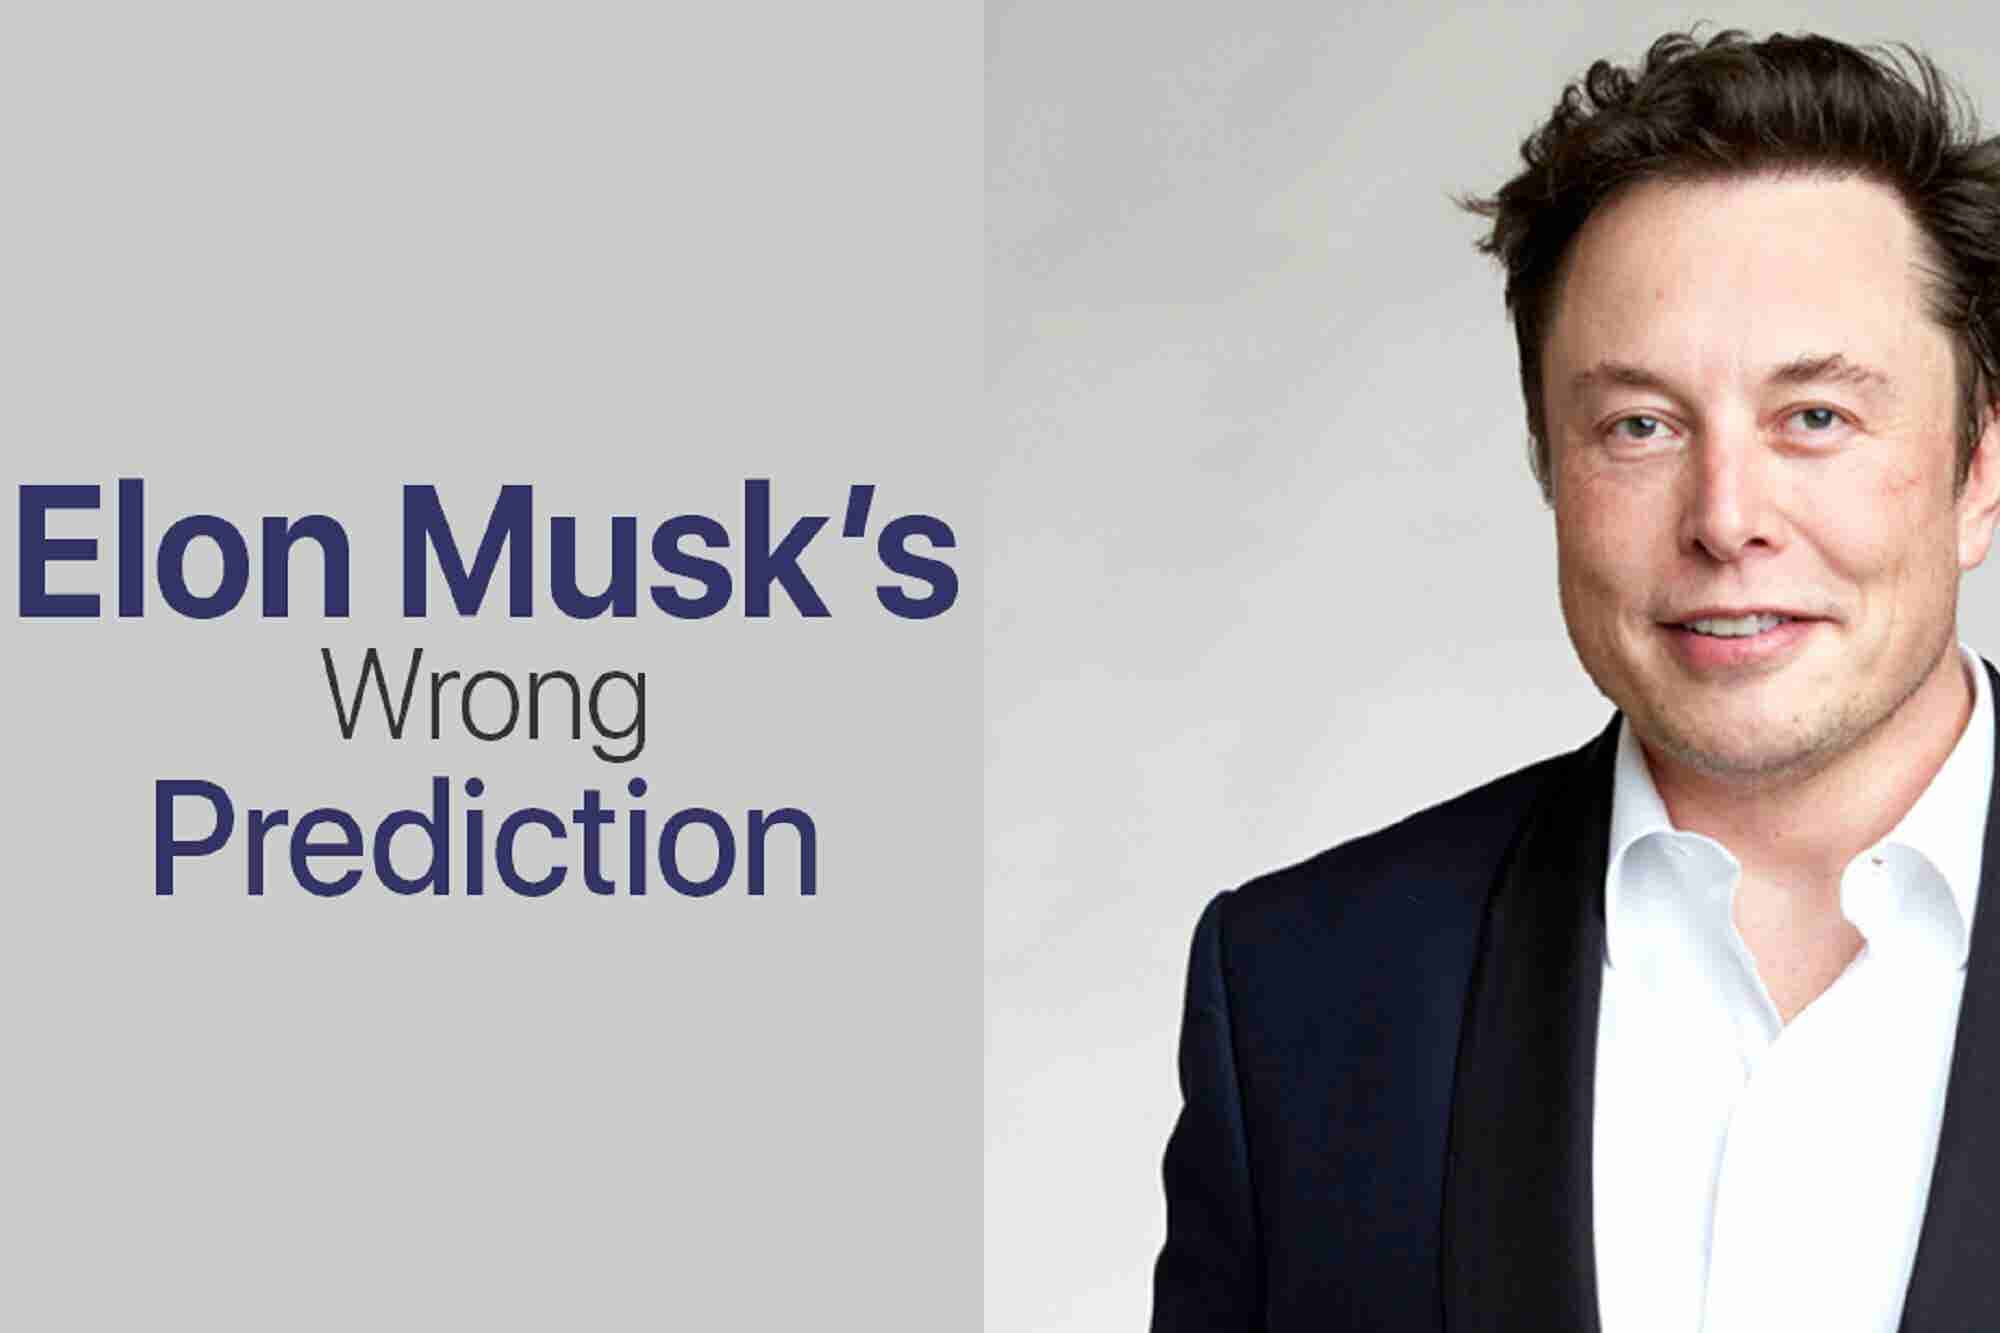 Beyond India: Elon Musk's Estimation Gone Wrong & Google's New Plan to Beat Amazon